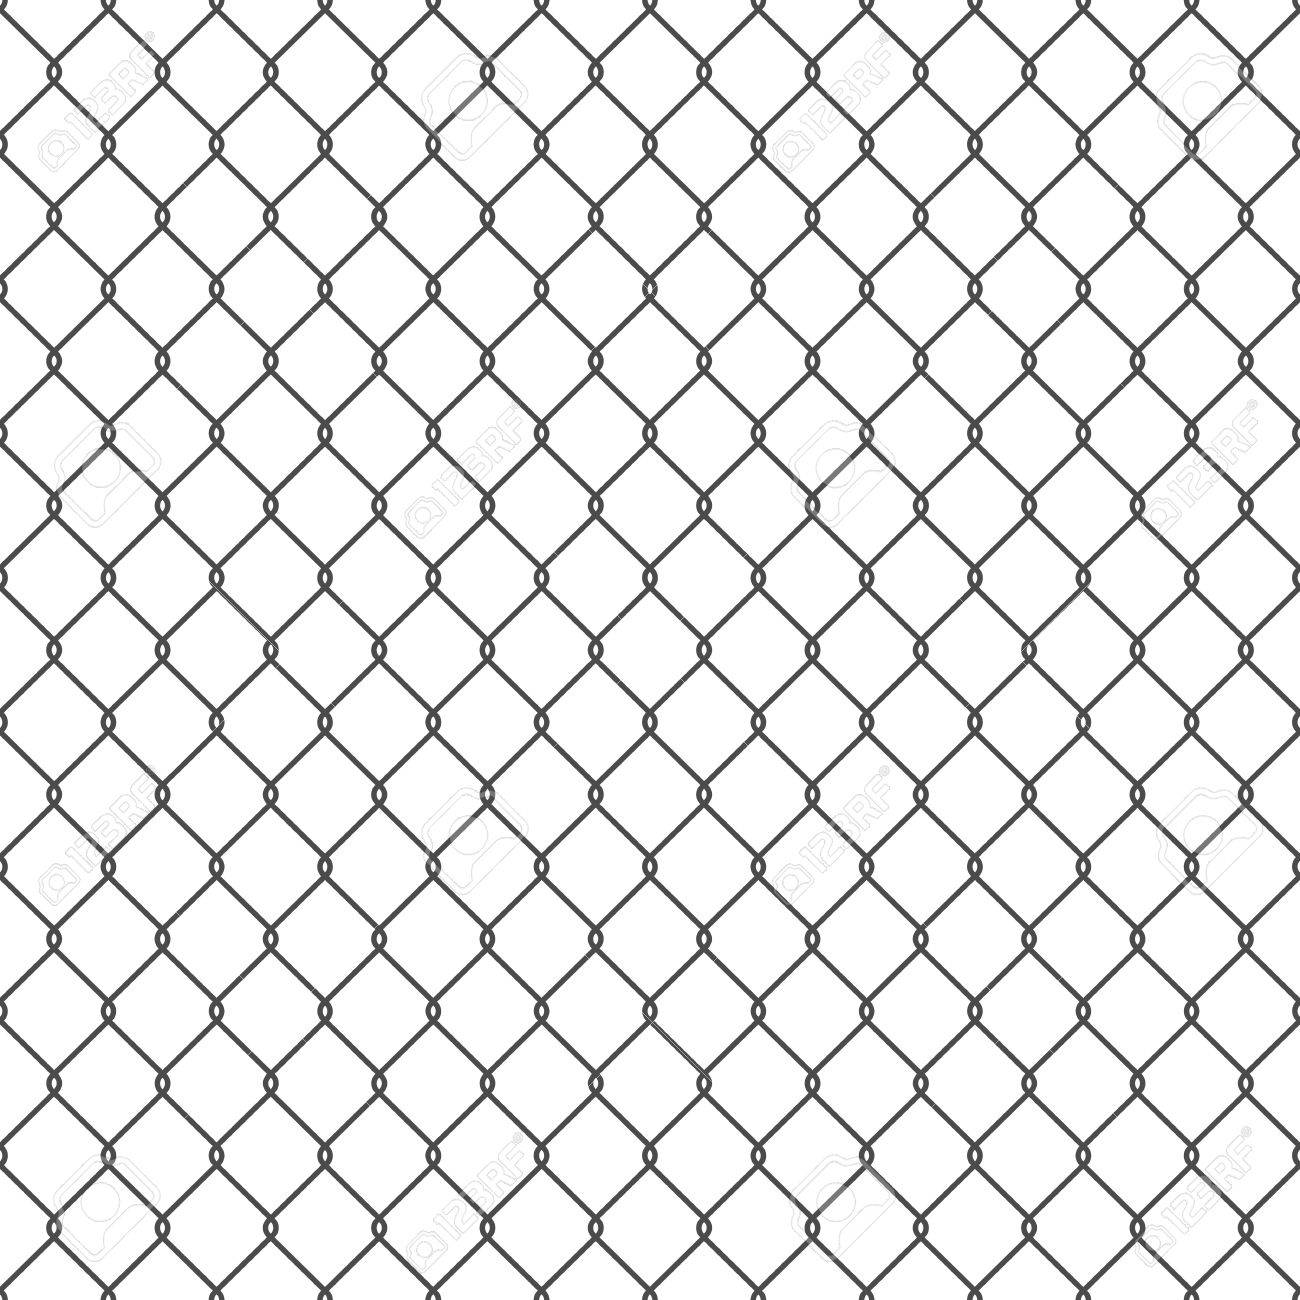 chain link fence background. Delighful Fence Vector Seamless Chain Link Fence Background EPS10 Stock  69002748 For Chain Link Fence Background